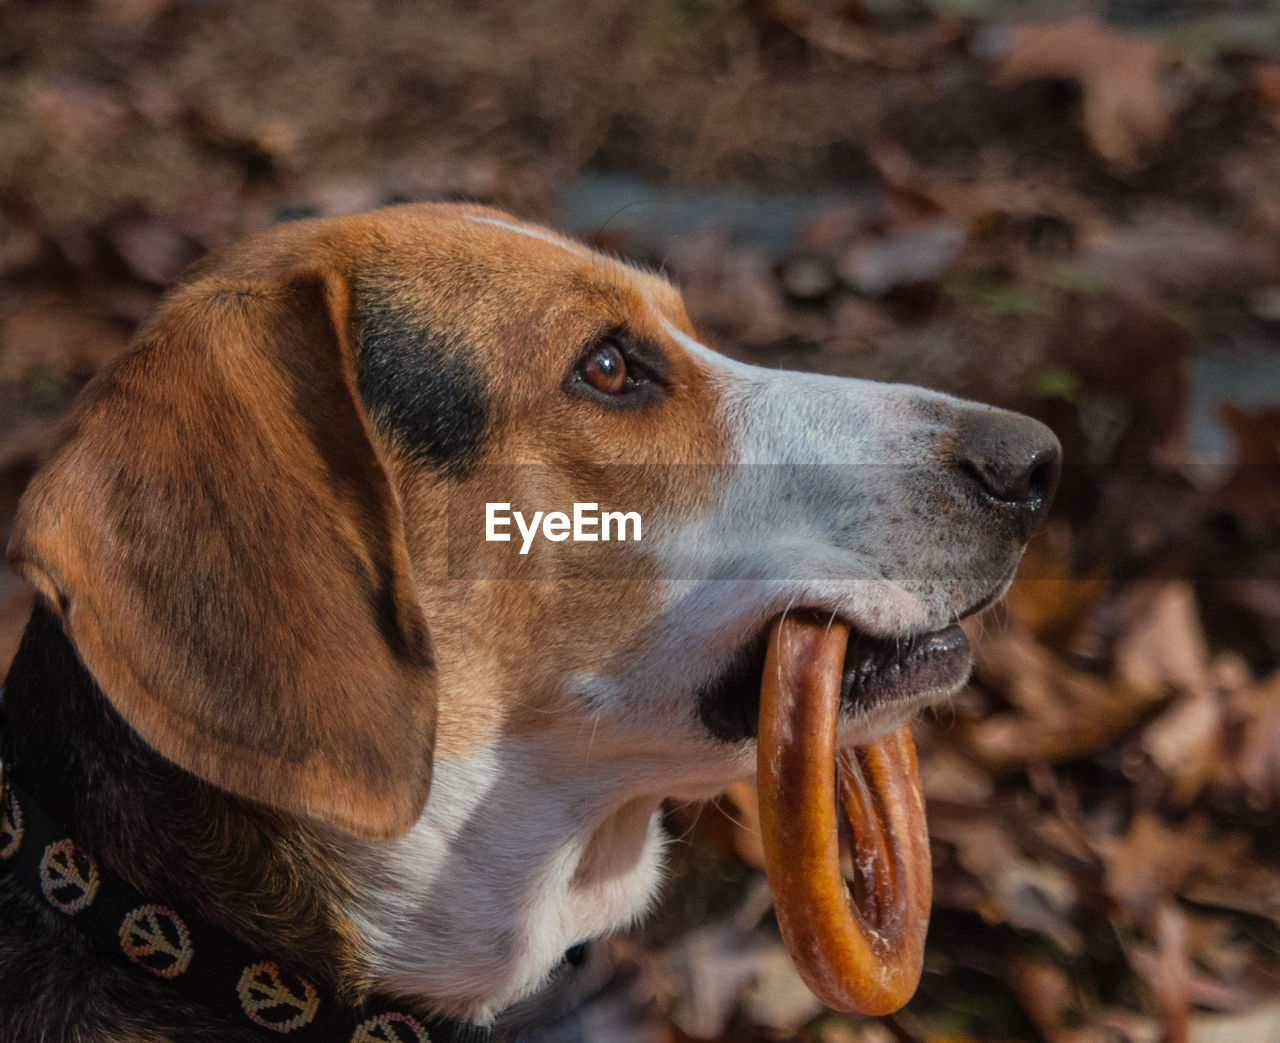 dog, canine, one animal, mammal, animal themes, animal, domestic, domestic animals, pets, looking, looking away, close-up, animal body part, focus on foreground, no people, brown, animal head, vertebrate, day, field, mouth open, profile view, animal mouth, snout